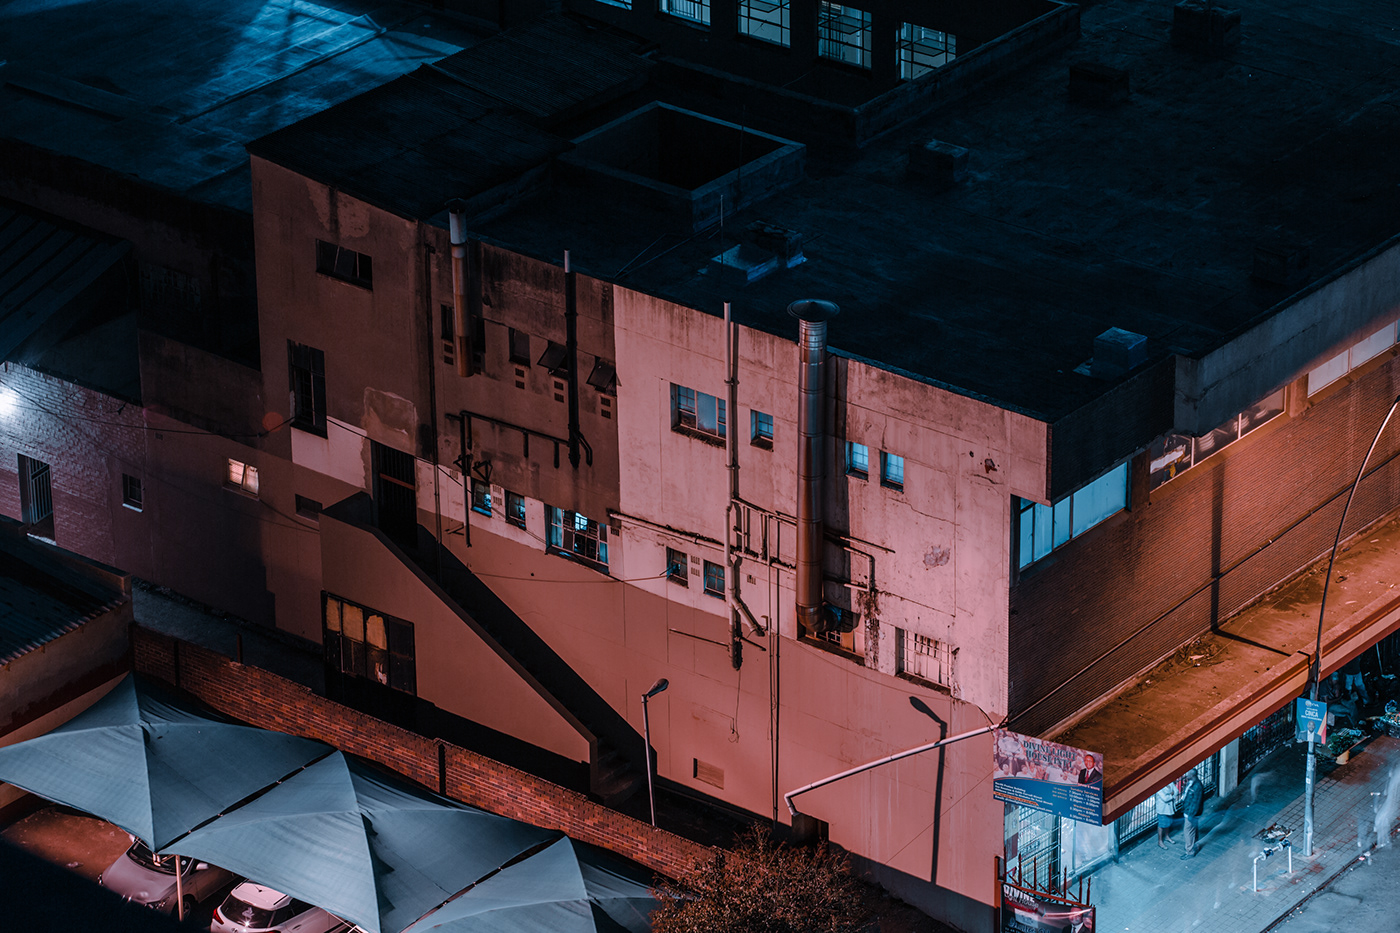 night,long exposure,Urban,low light,south africa,johannesburg,neon,city,Dystopia,light